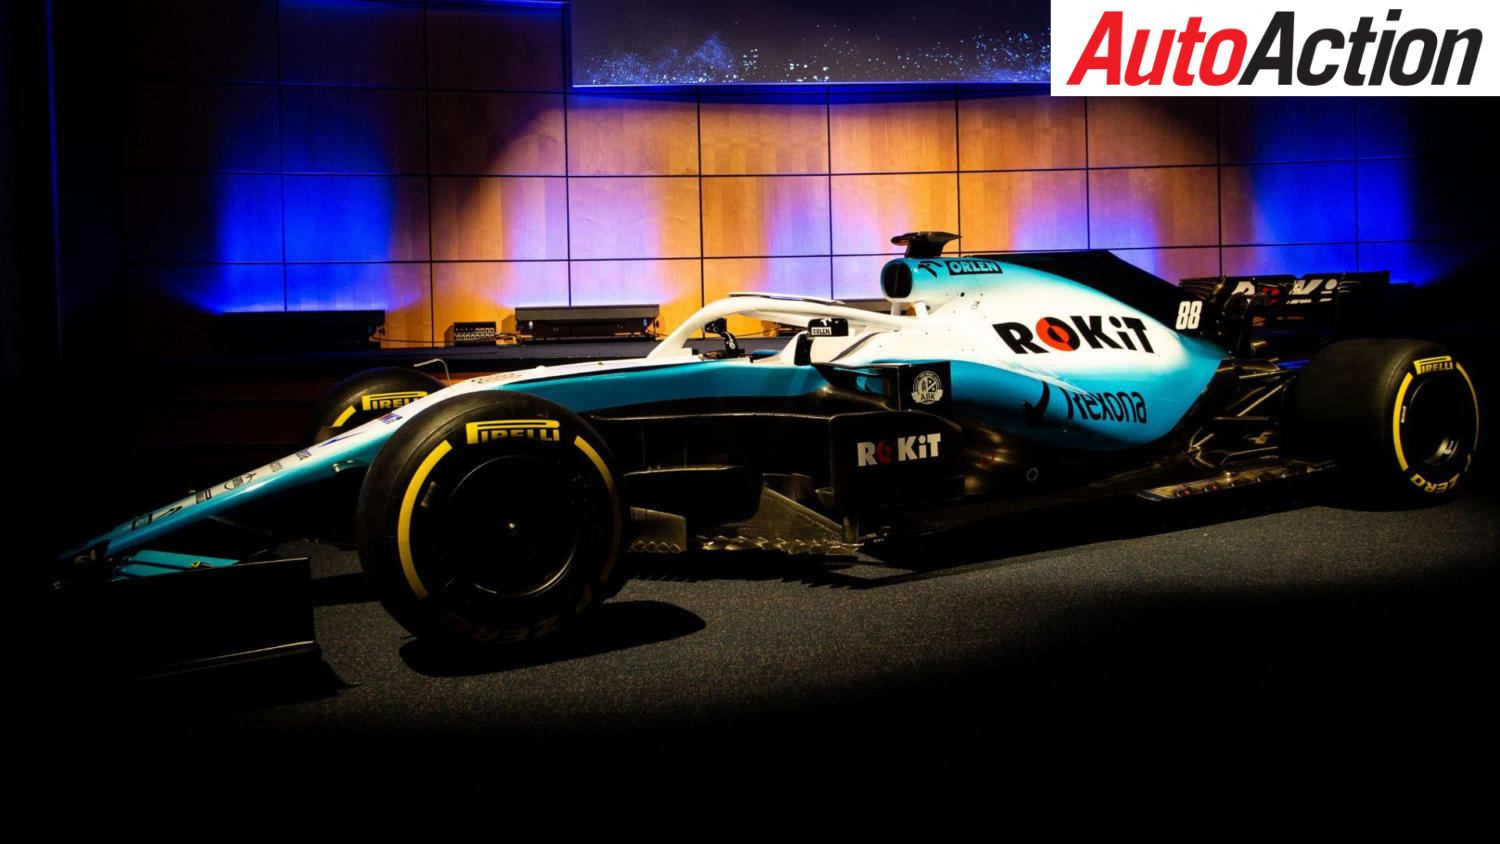 NEW TITLE PARTNER FOR WILLIAMS F1